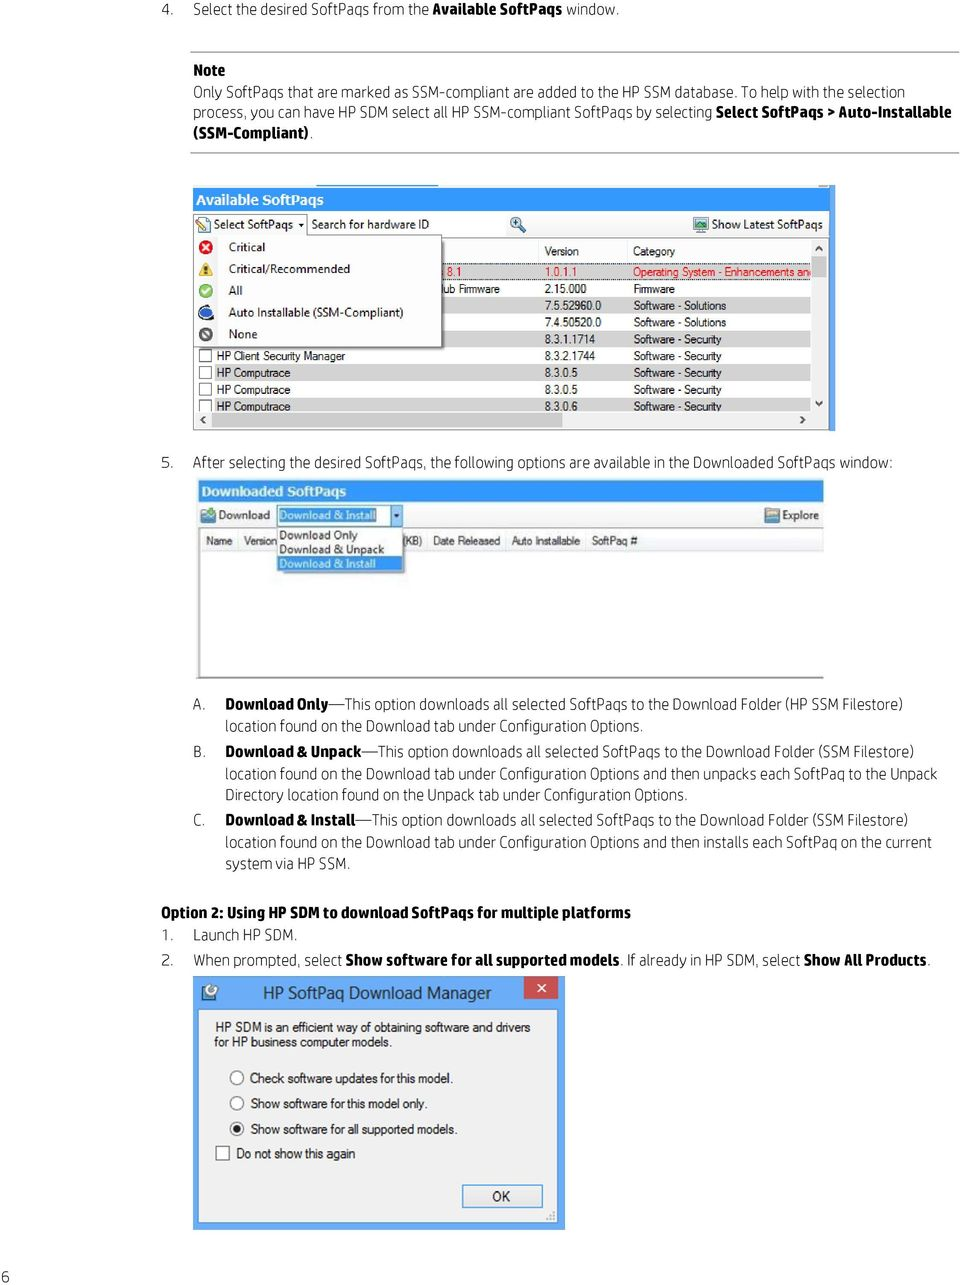 HP Softpaq Download Manager and HP System Software Manager - PDF